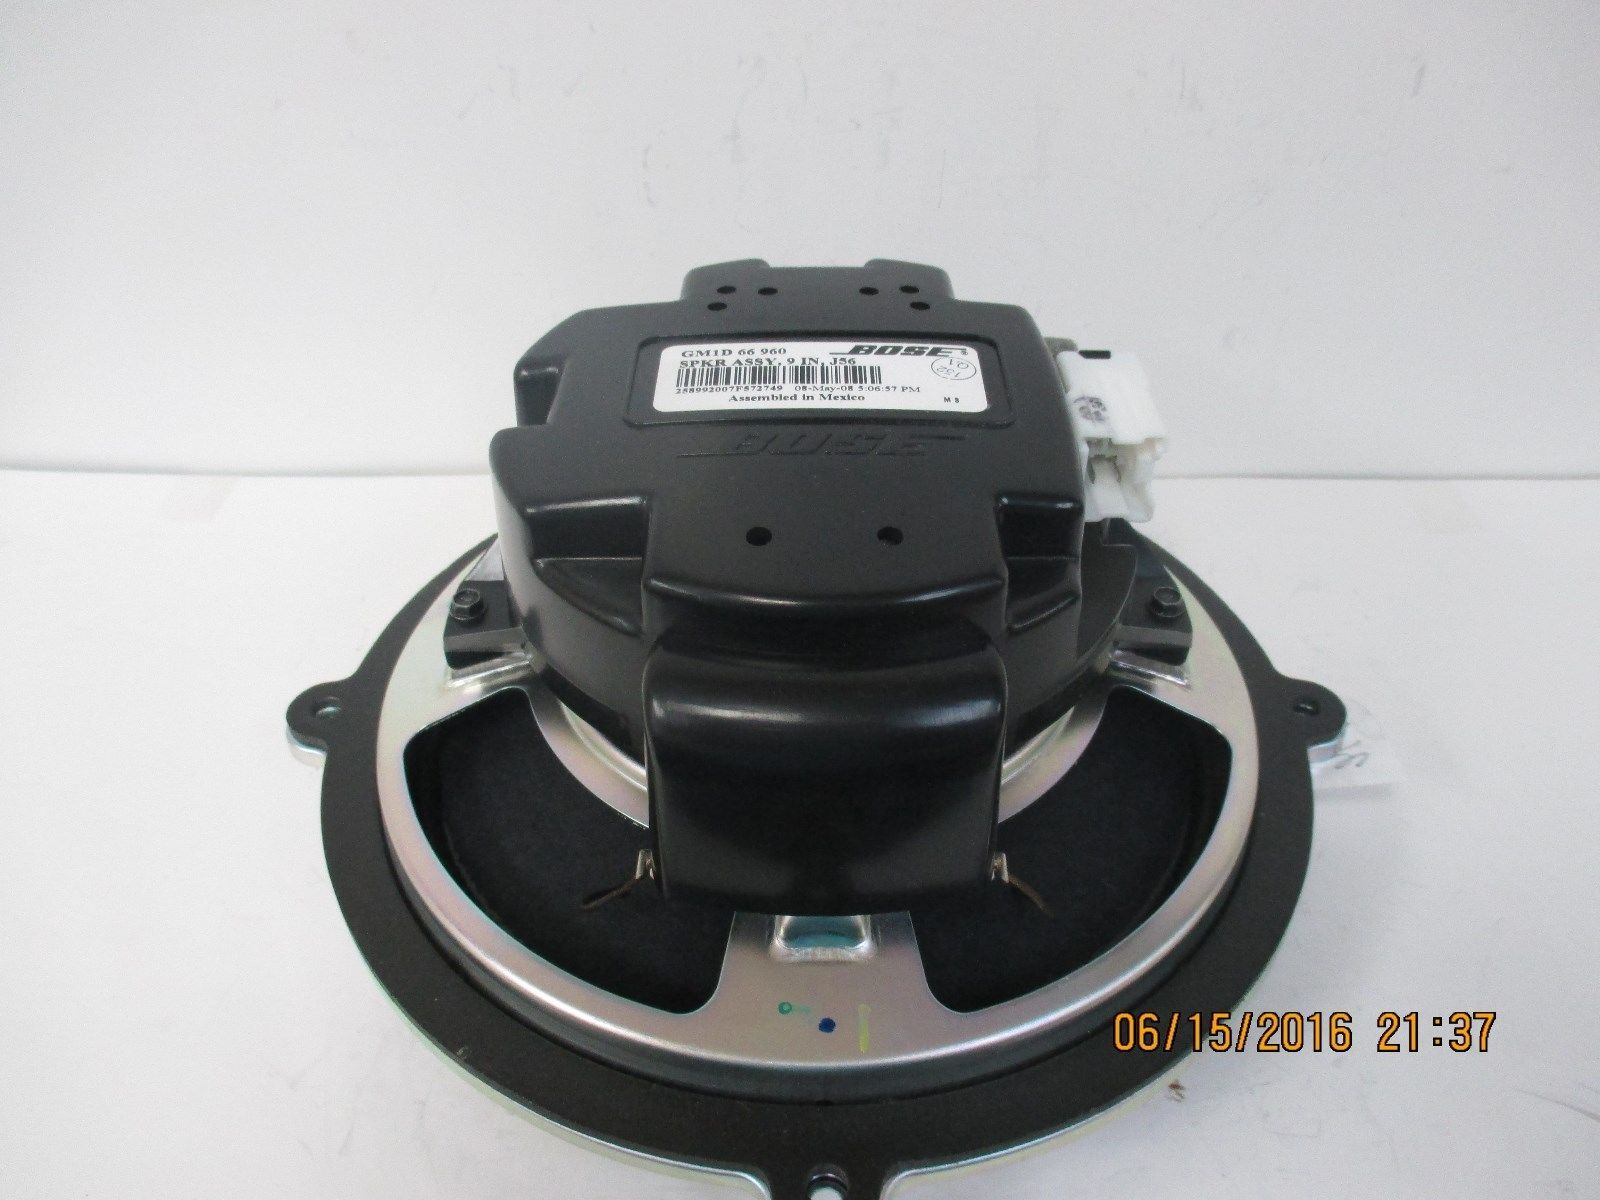 2003-08 Mazda 6 Bose Subwoofer and Amp and 13 similar items